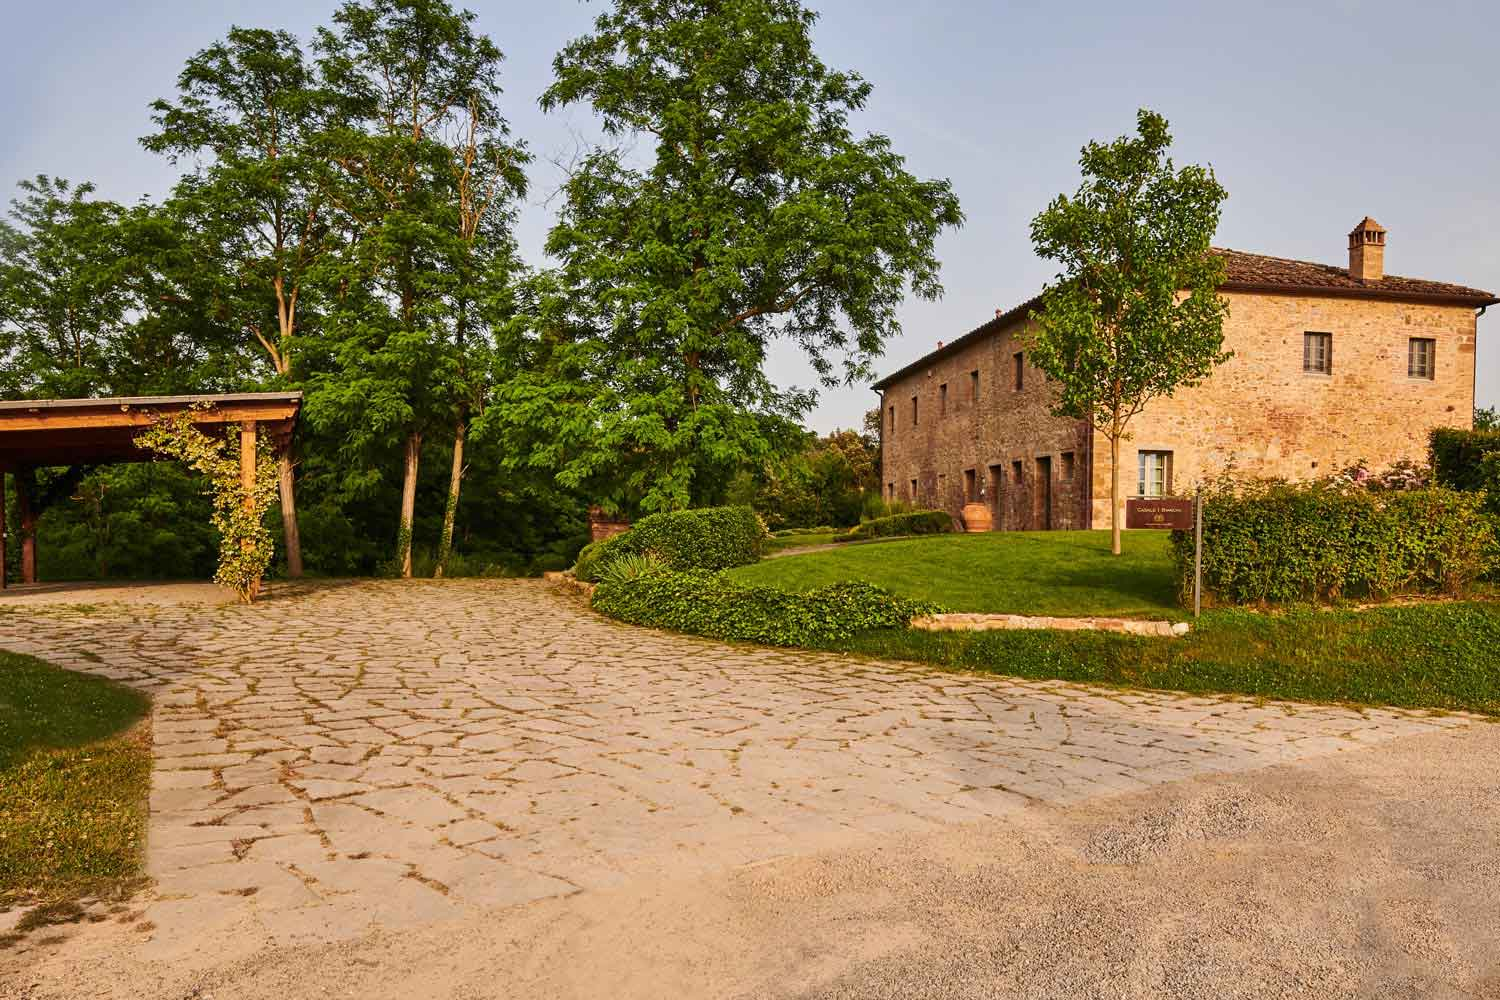 I Bianchi is a meticulously restored farmhouse in Tuscany